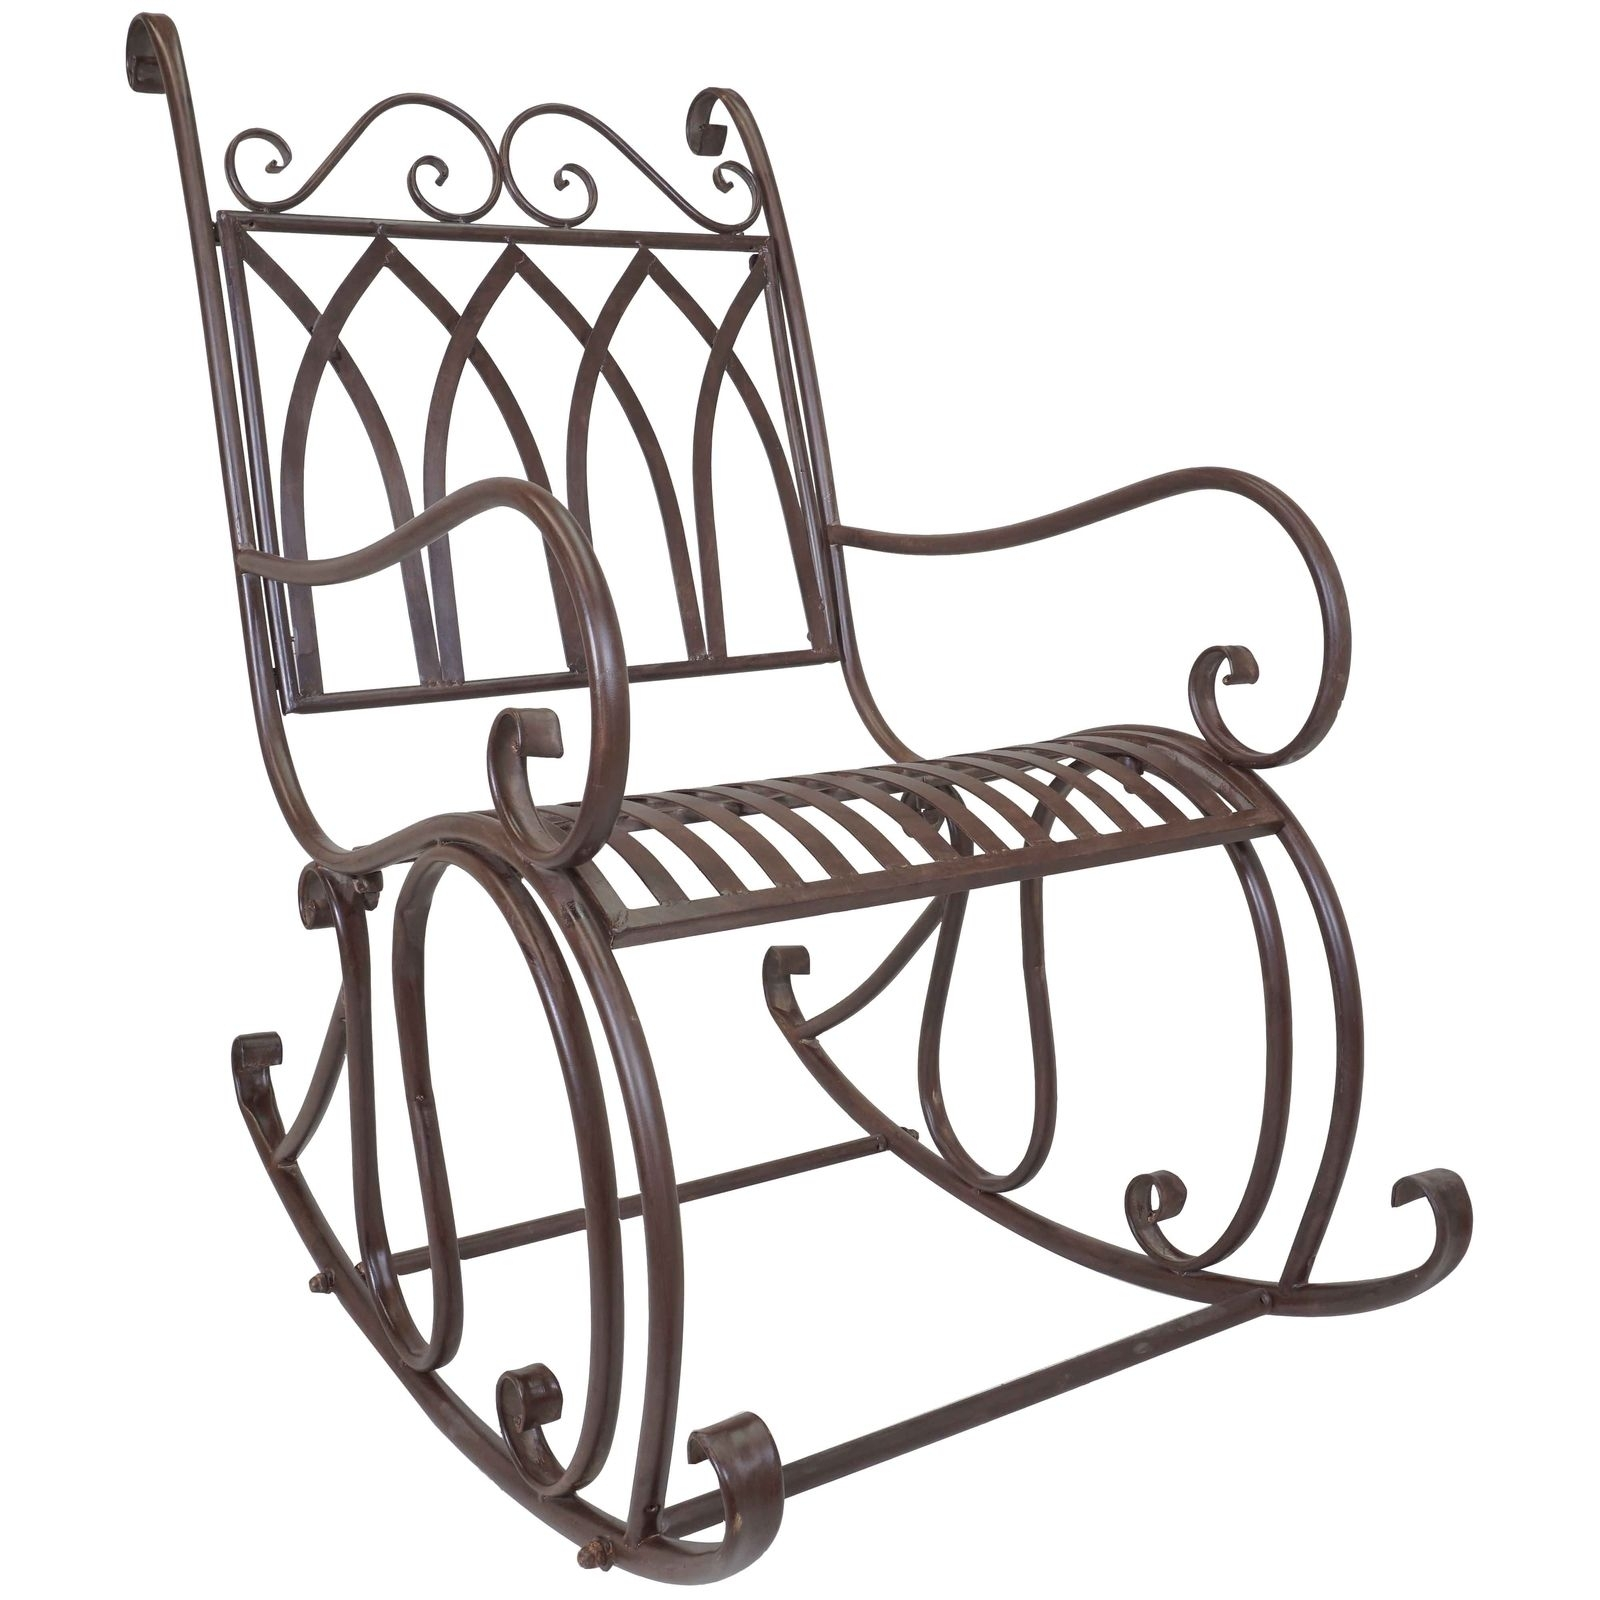 Inspiration about Titan Outdoor Metal Rocking Chair White Porch Patio Garden Seat Deck Inside Patio Metal Rocking Chairs (#5 of 15)